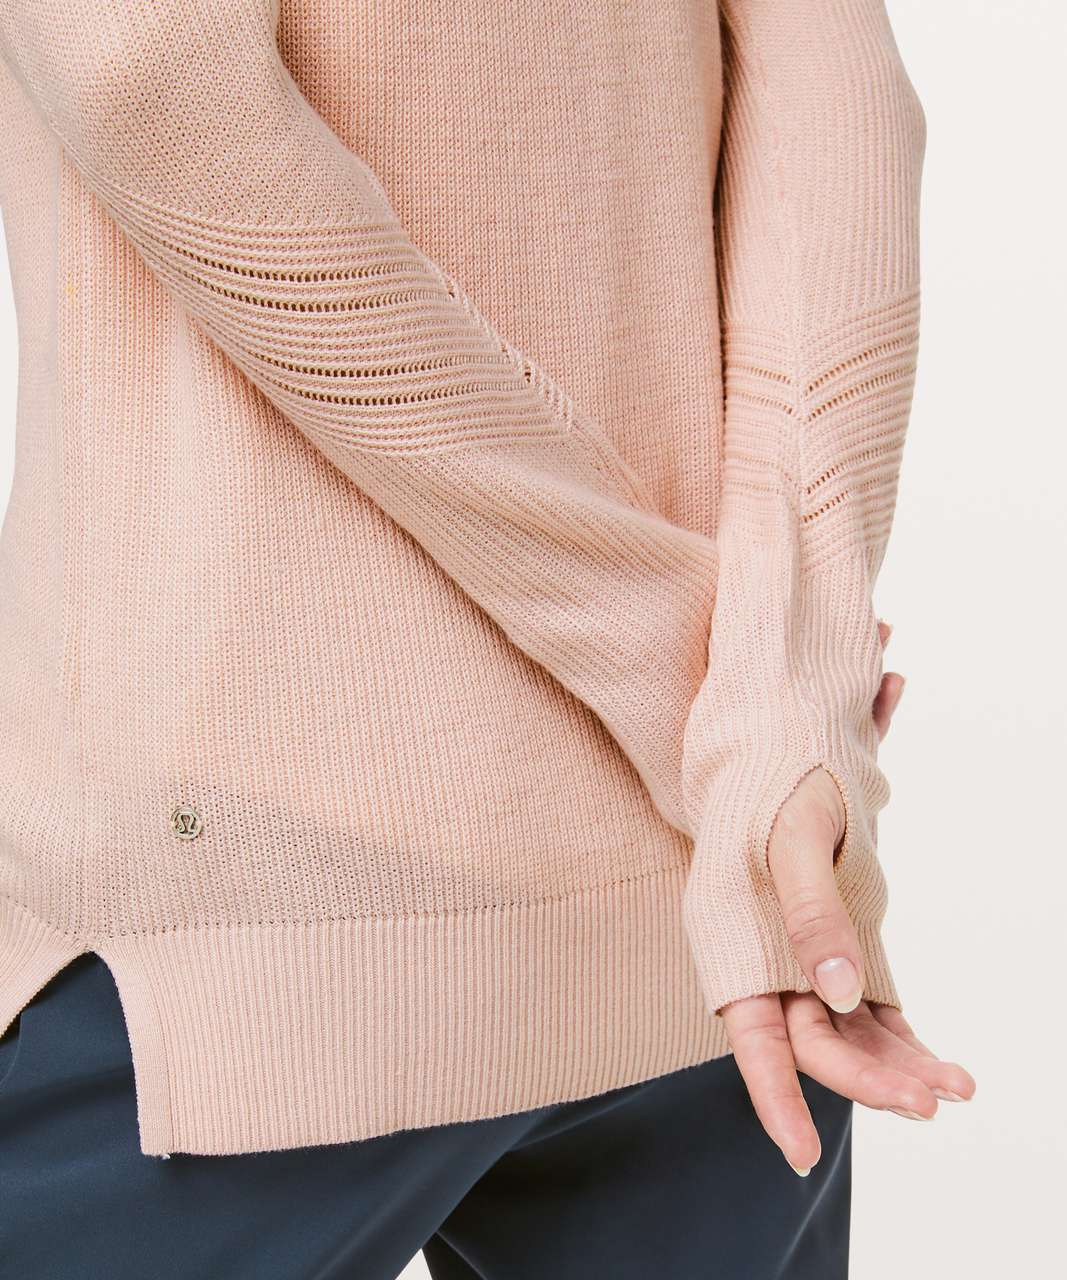 Lululemon Time To Restore Sweater - Misty Pink